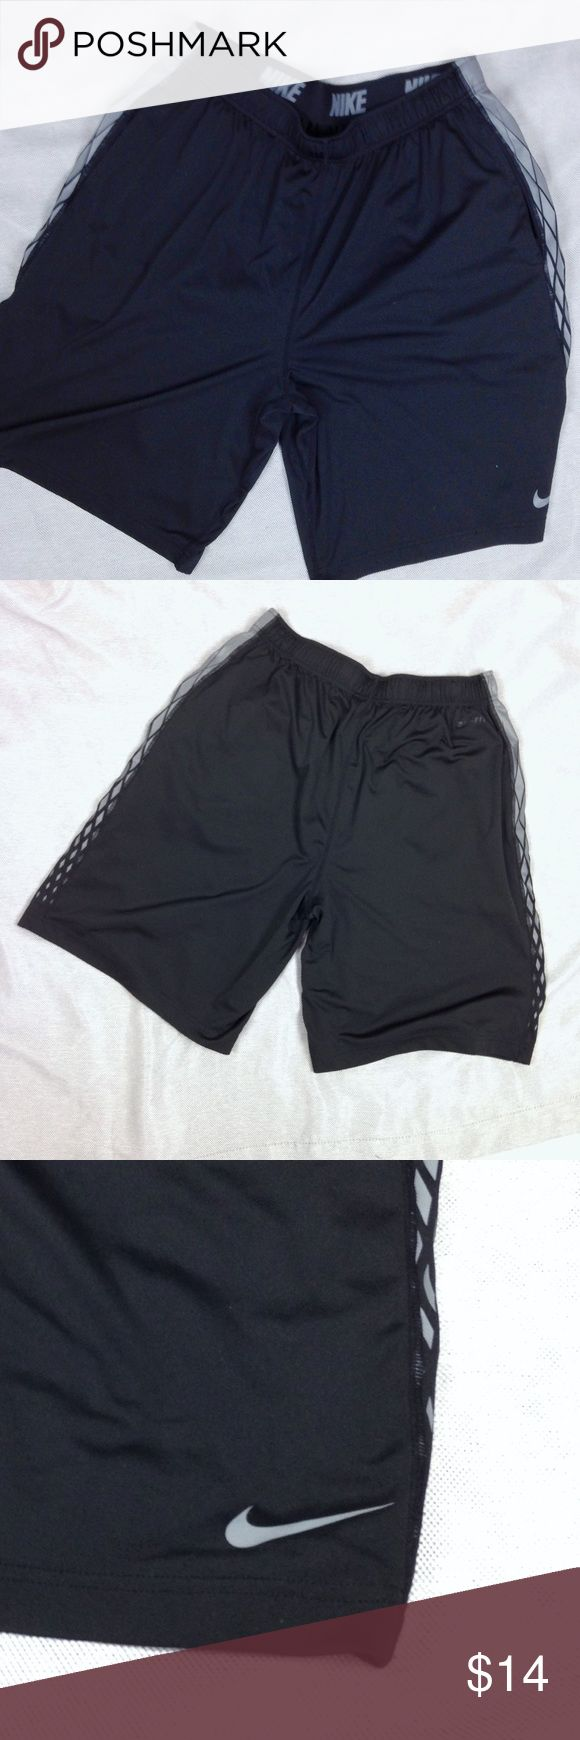 Men's NIKE Basketball Shorts Large-Black Nike Basketball Shorts  Men's Size Large  Black  Inside tie waist  100% polyester   Excellent preowned condition  Smoke free, dog loving home Nike Shorts Athletic http://feedproxy.google.com/fashionshoes11